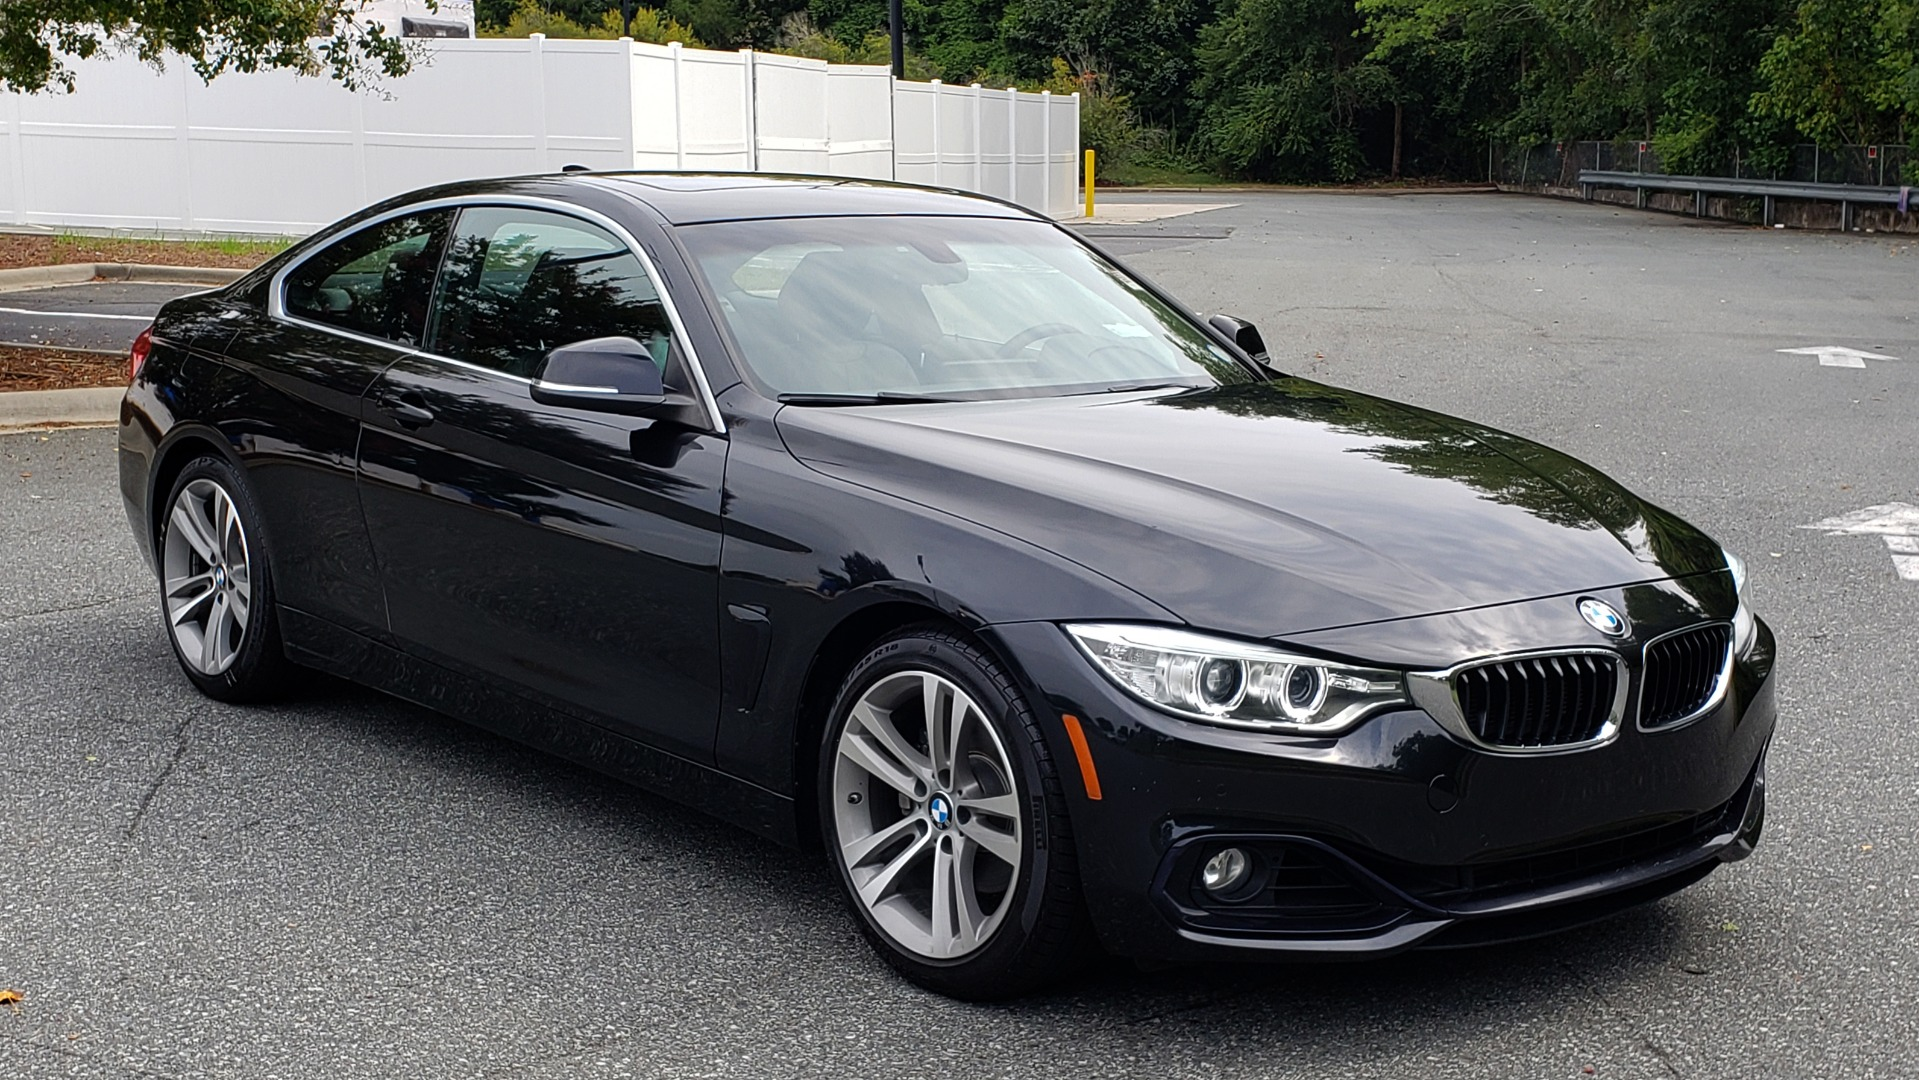 Used 2016 BMW 4 SERIES 428I PREMIUM COUPE / 2.0L / AUTO / NAV / SUNROOF / HEATED SEATS for sale $22,995 at Formula Imports in Charlotte NC 28227 8